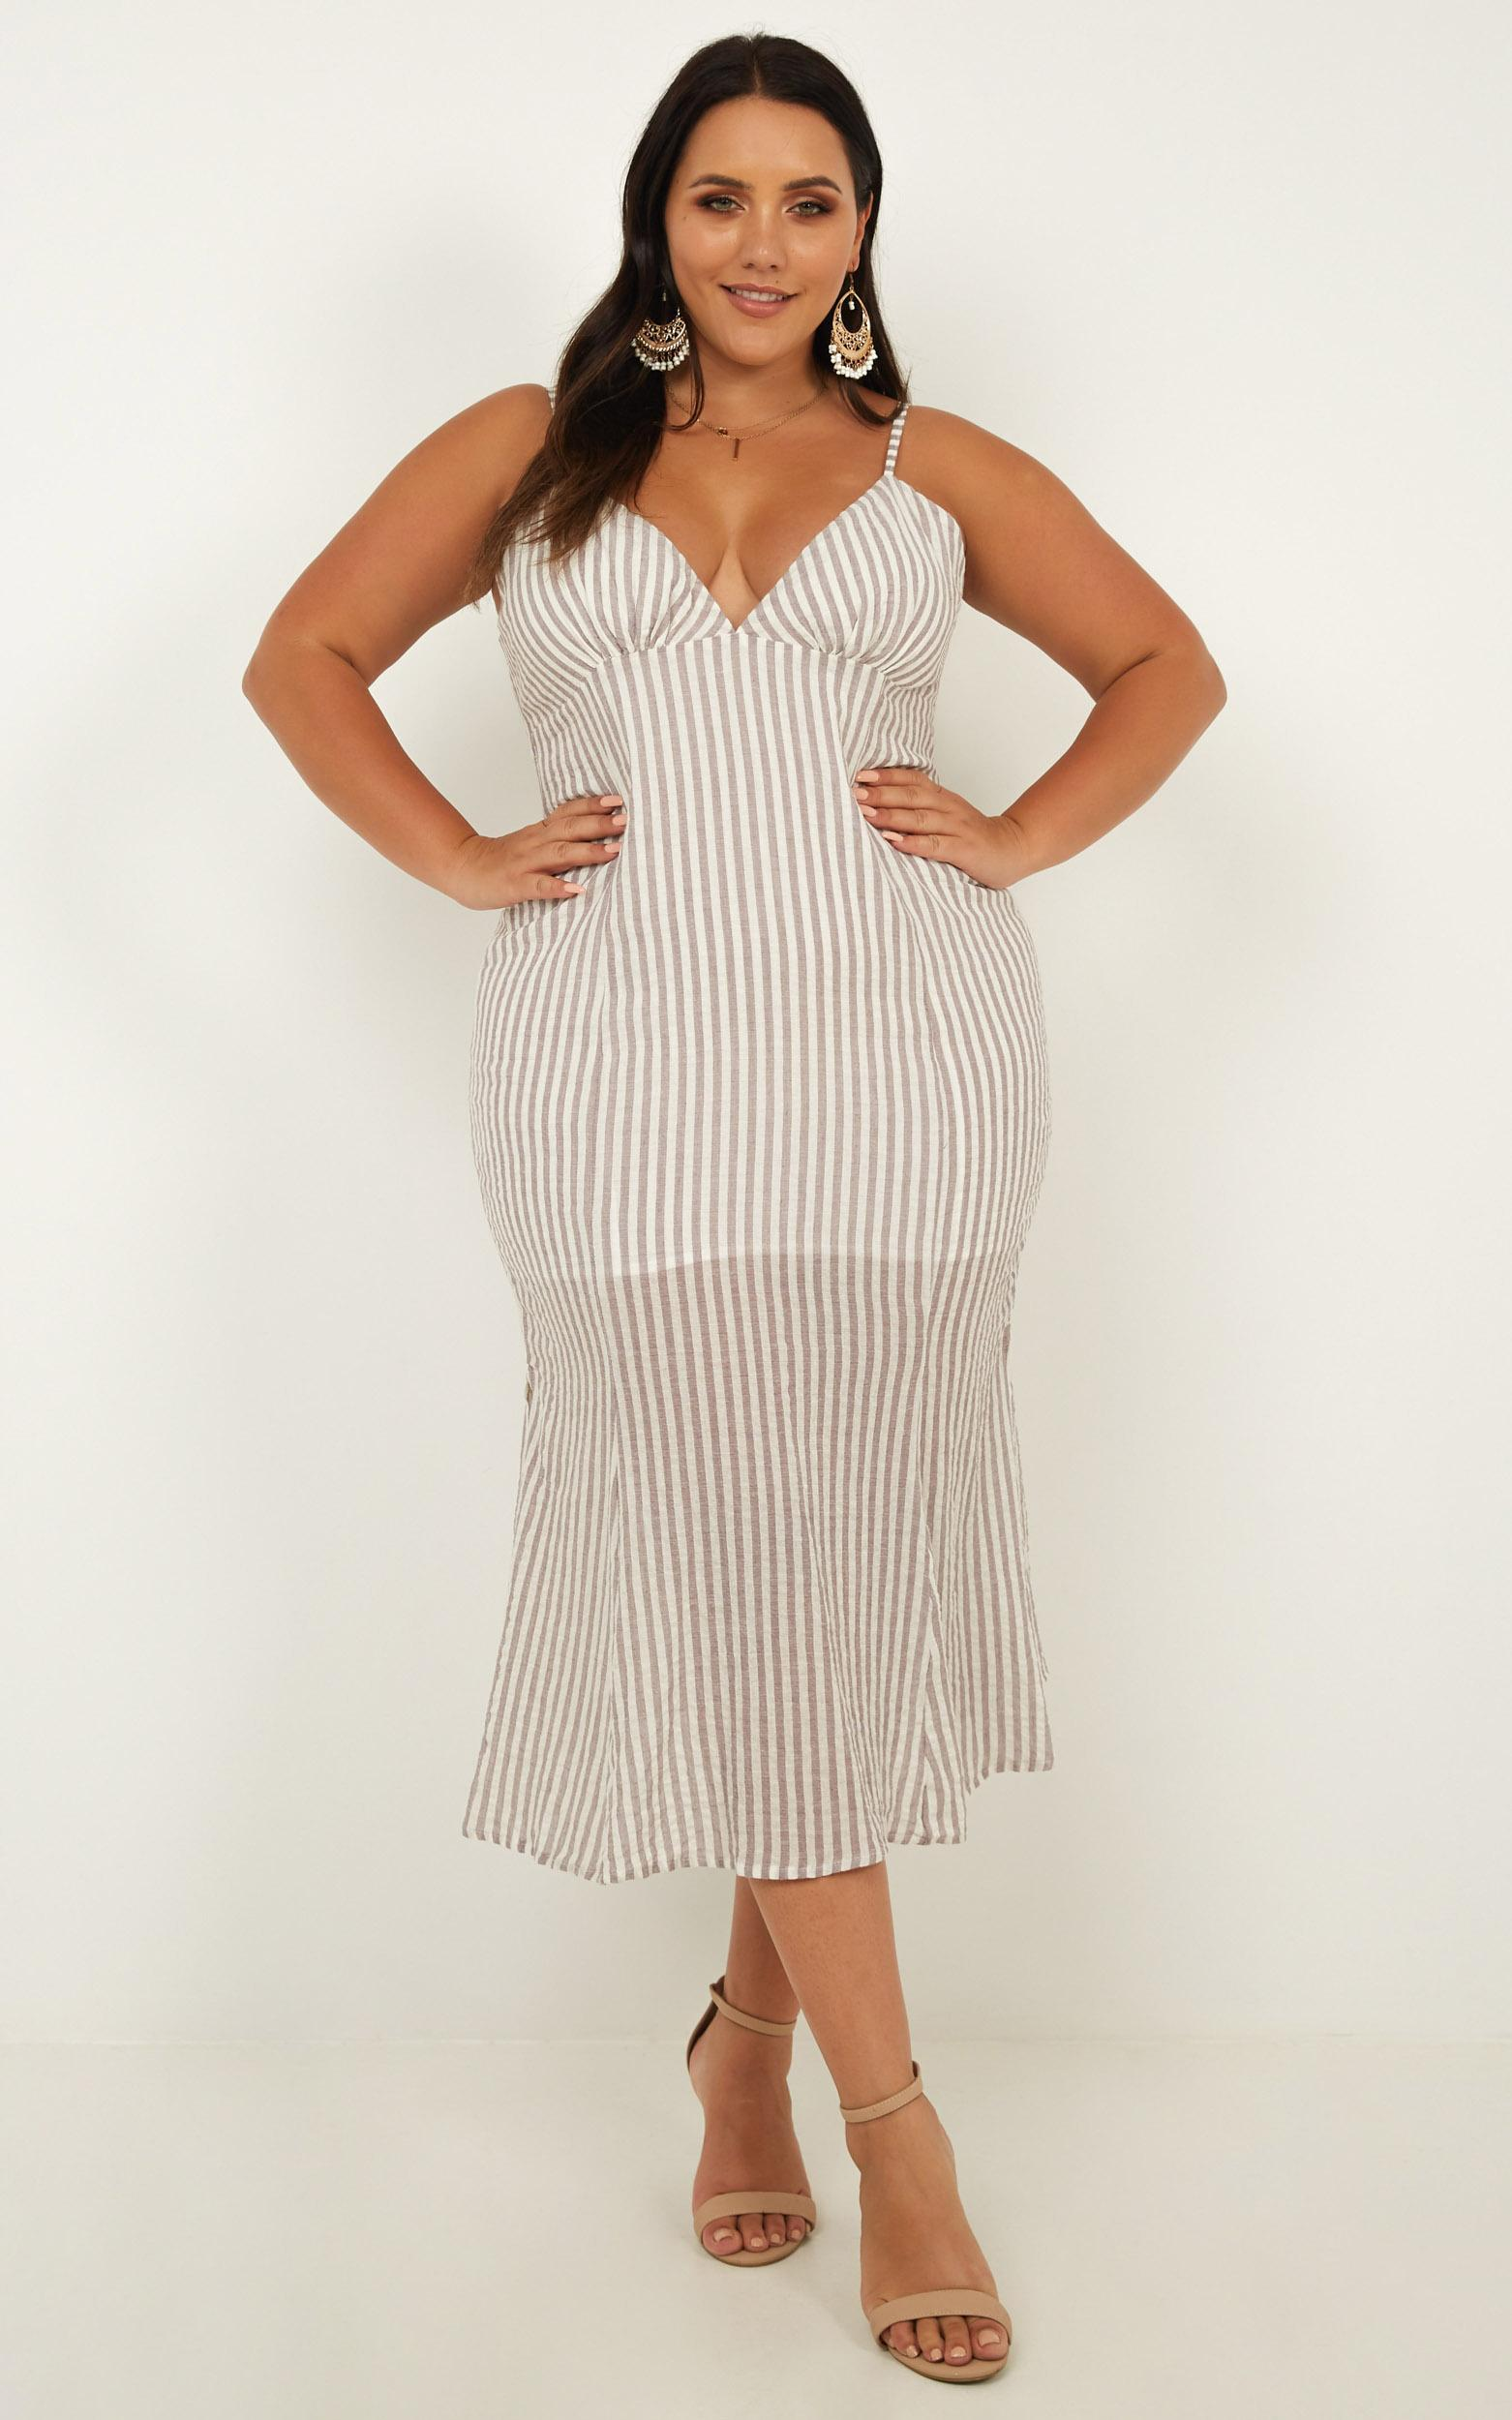 Sly Love Dress in brown stripe - 20 (XXXXL), Brown, hi-res image number null